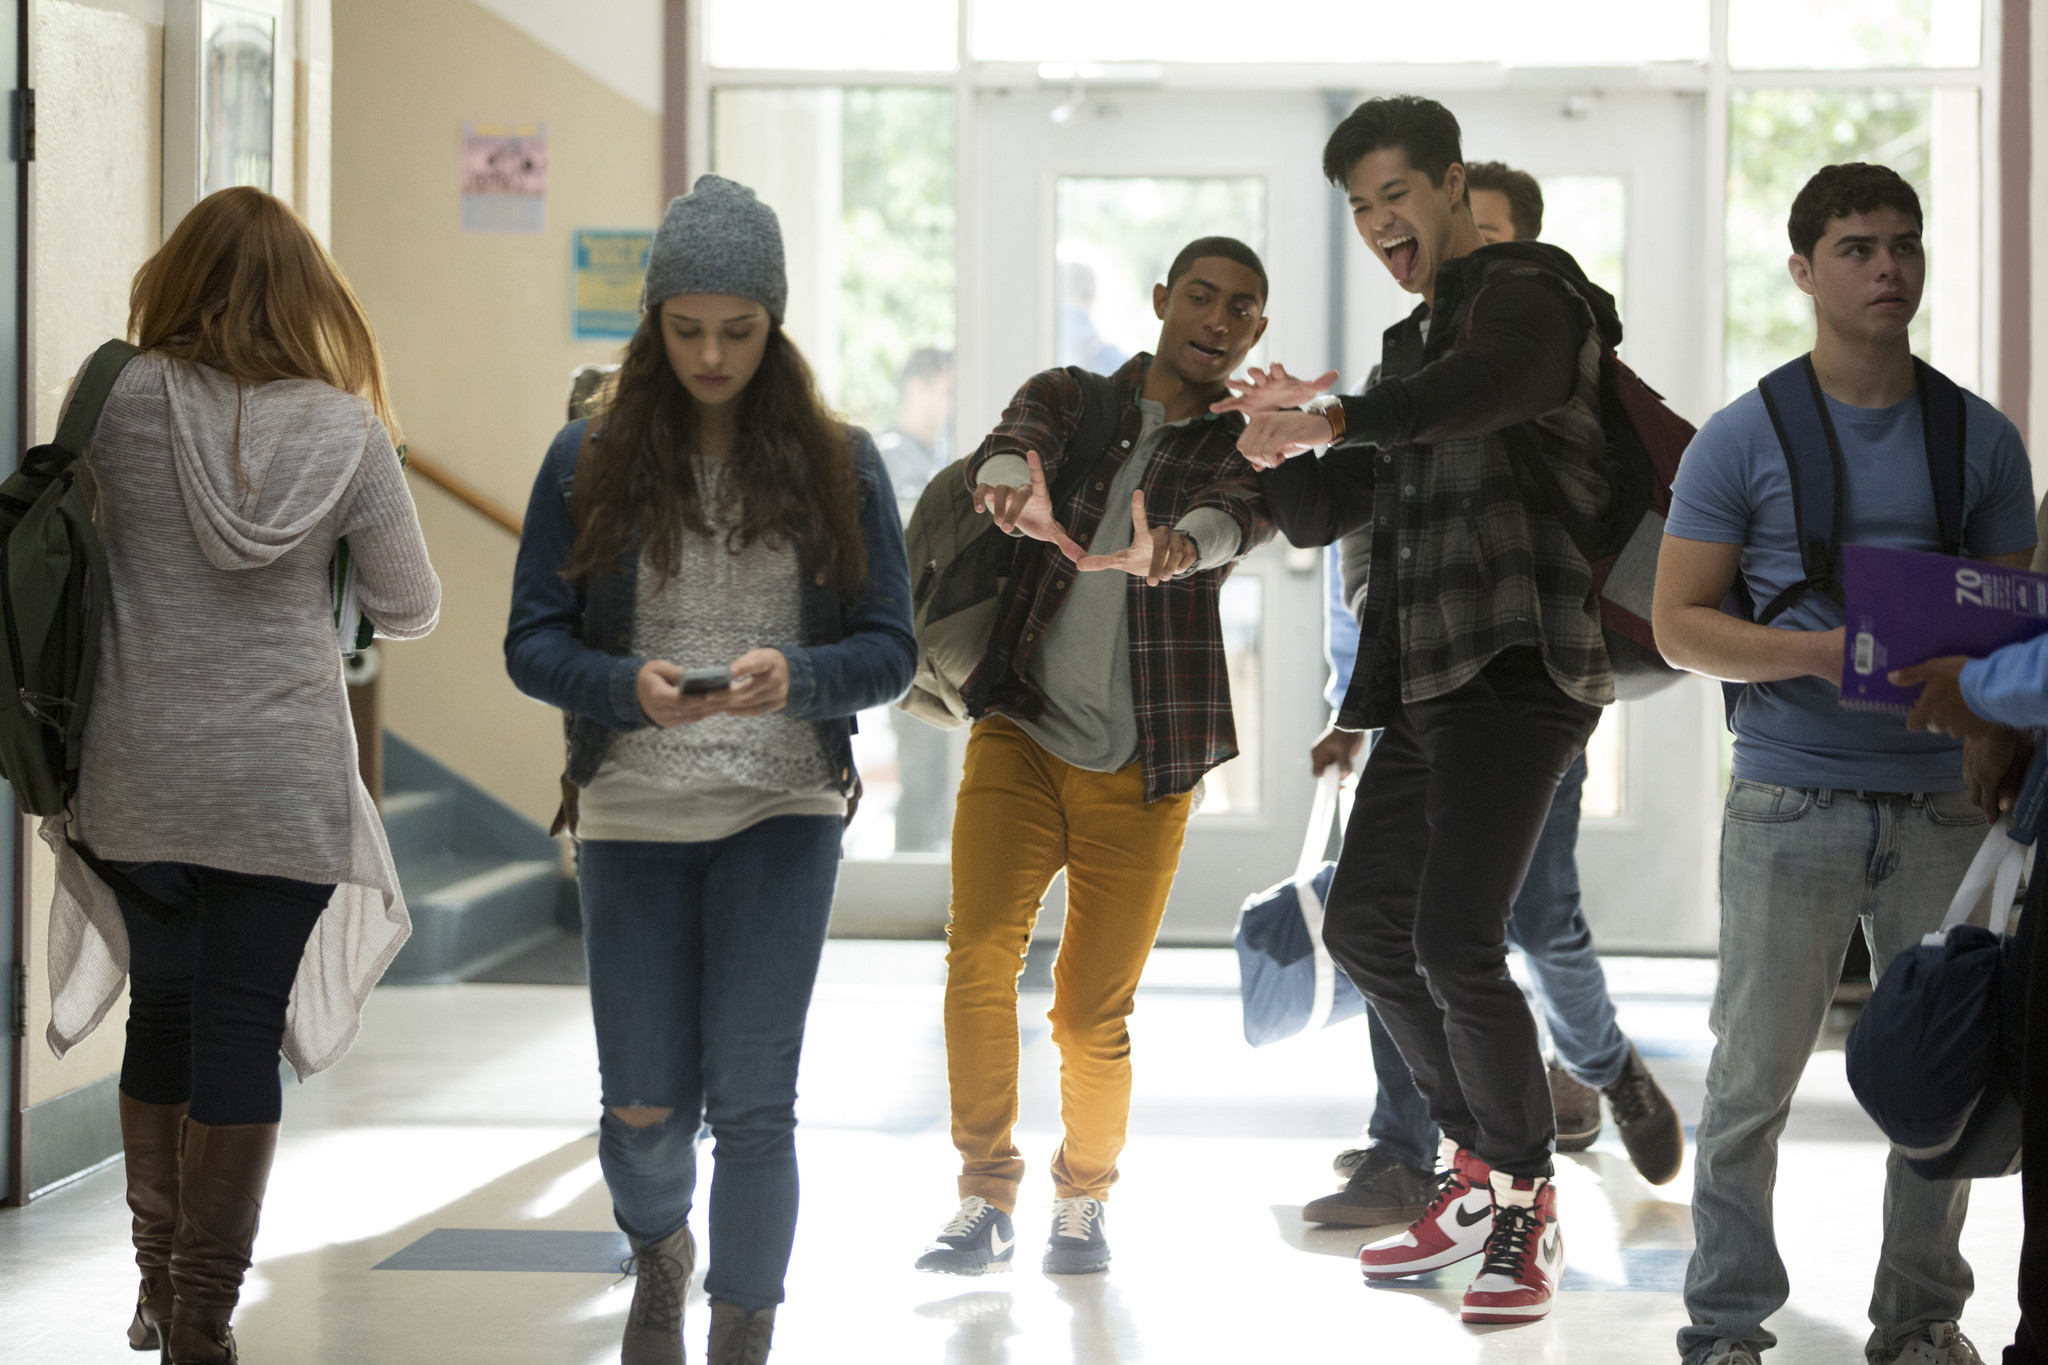 Katherine Langford (as Hannah Baker) is teased in her school's hallways in a scene from